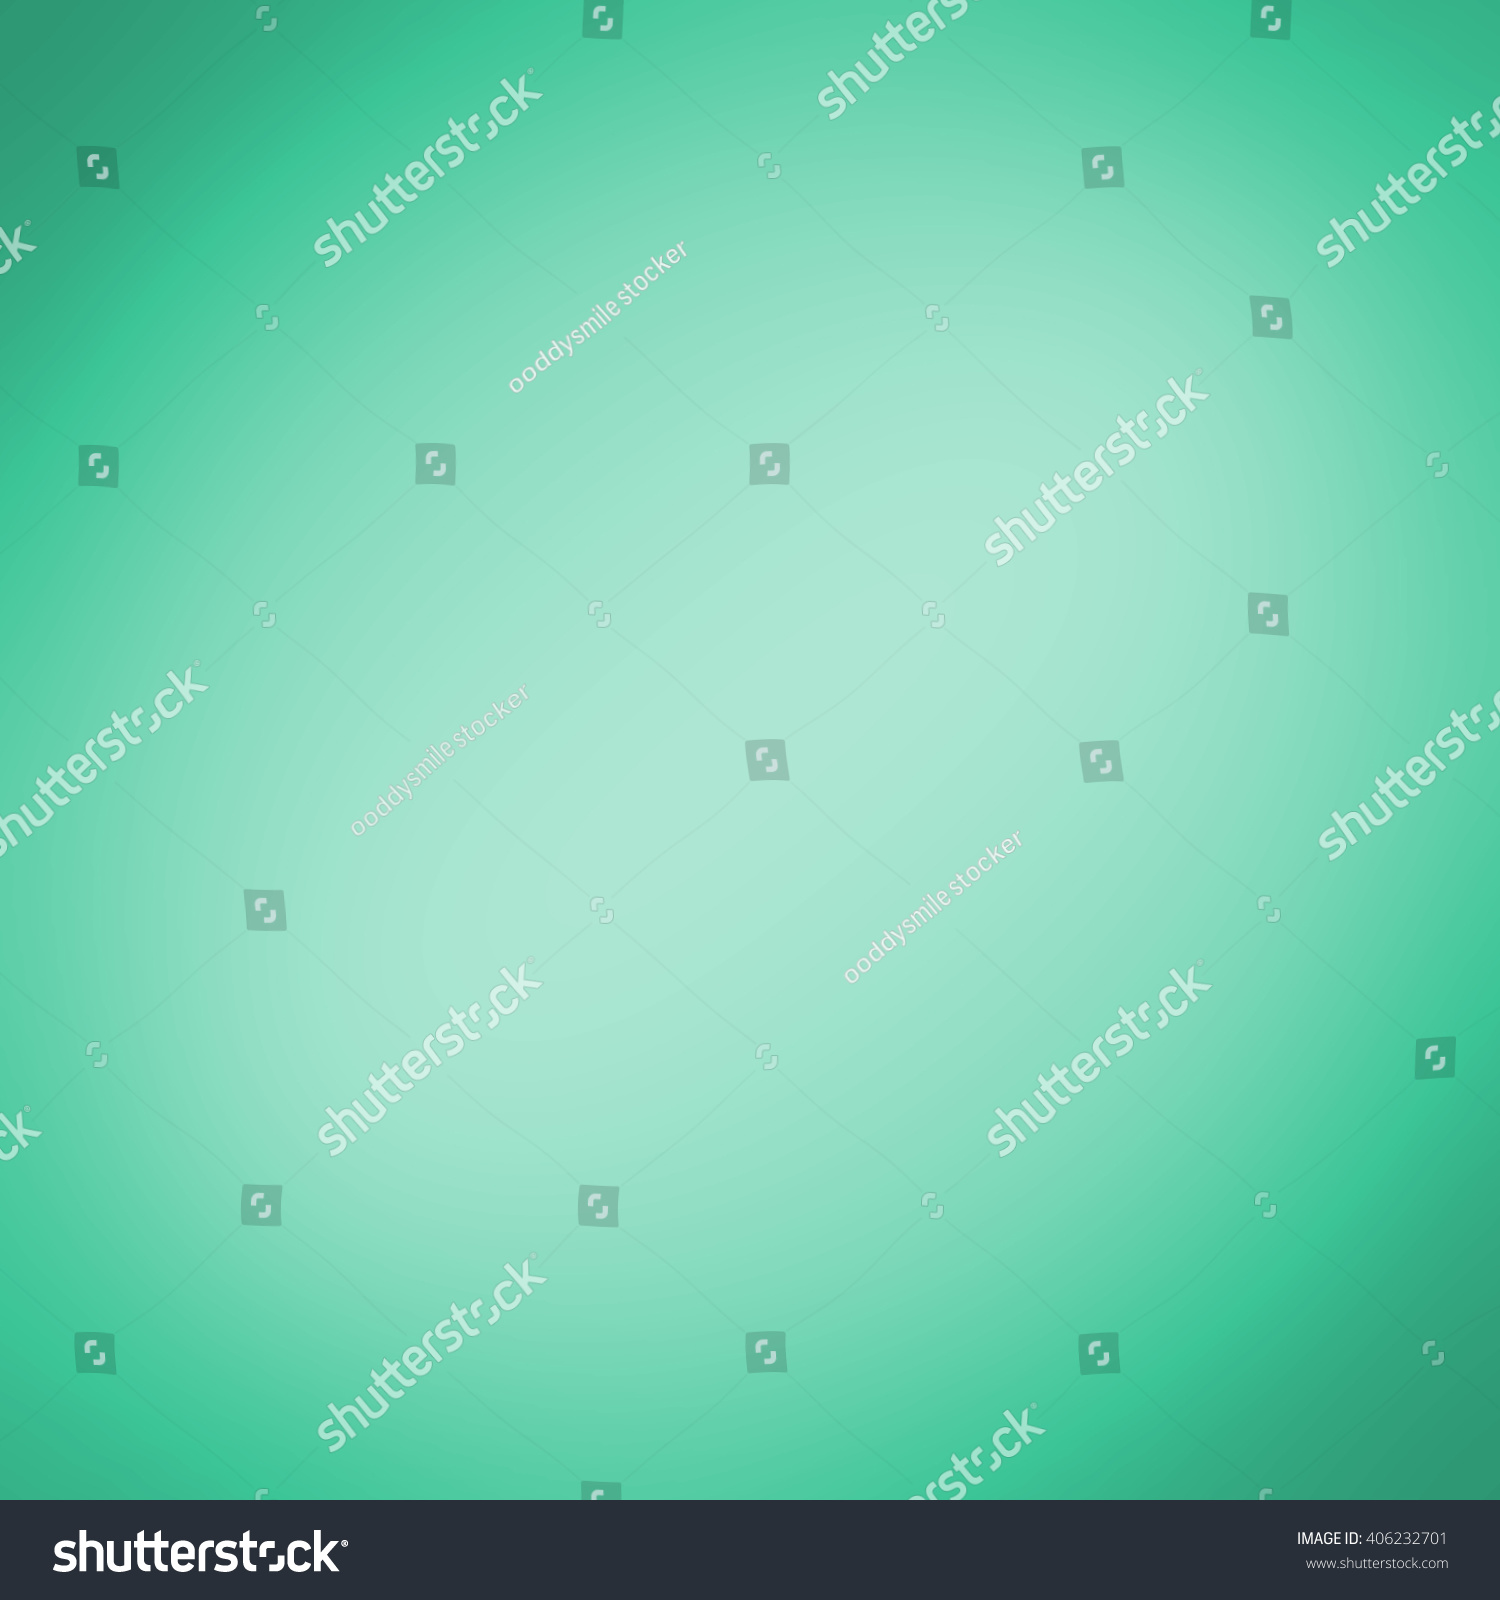 Green Gra nt Abstract Background Green Wallpaper Stock